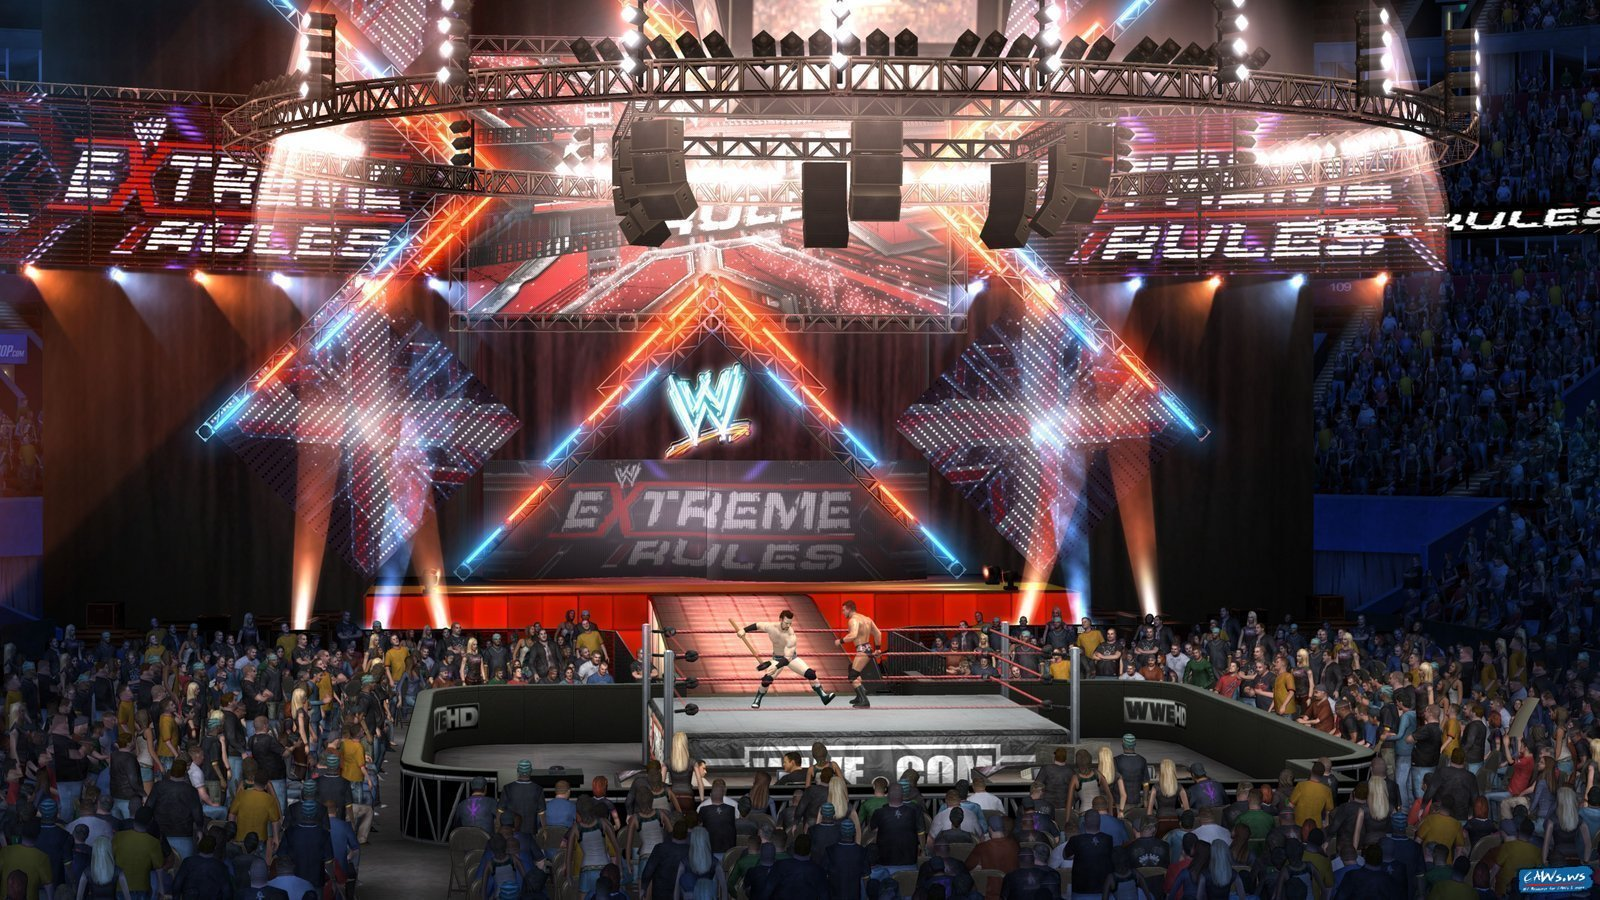 wwesvr201_extremerules_arena